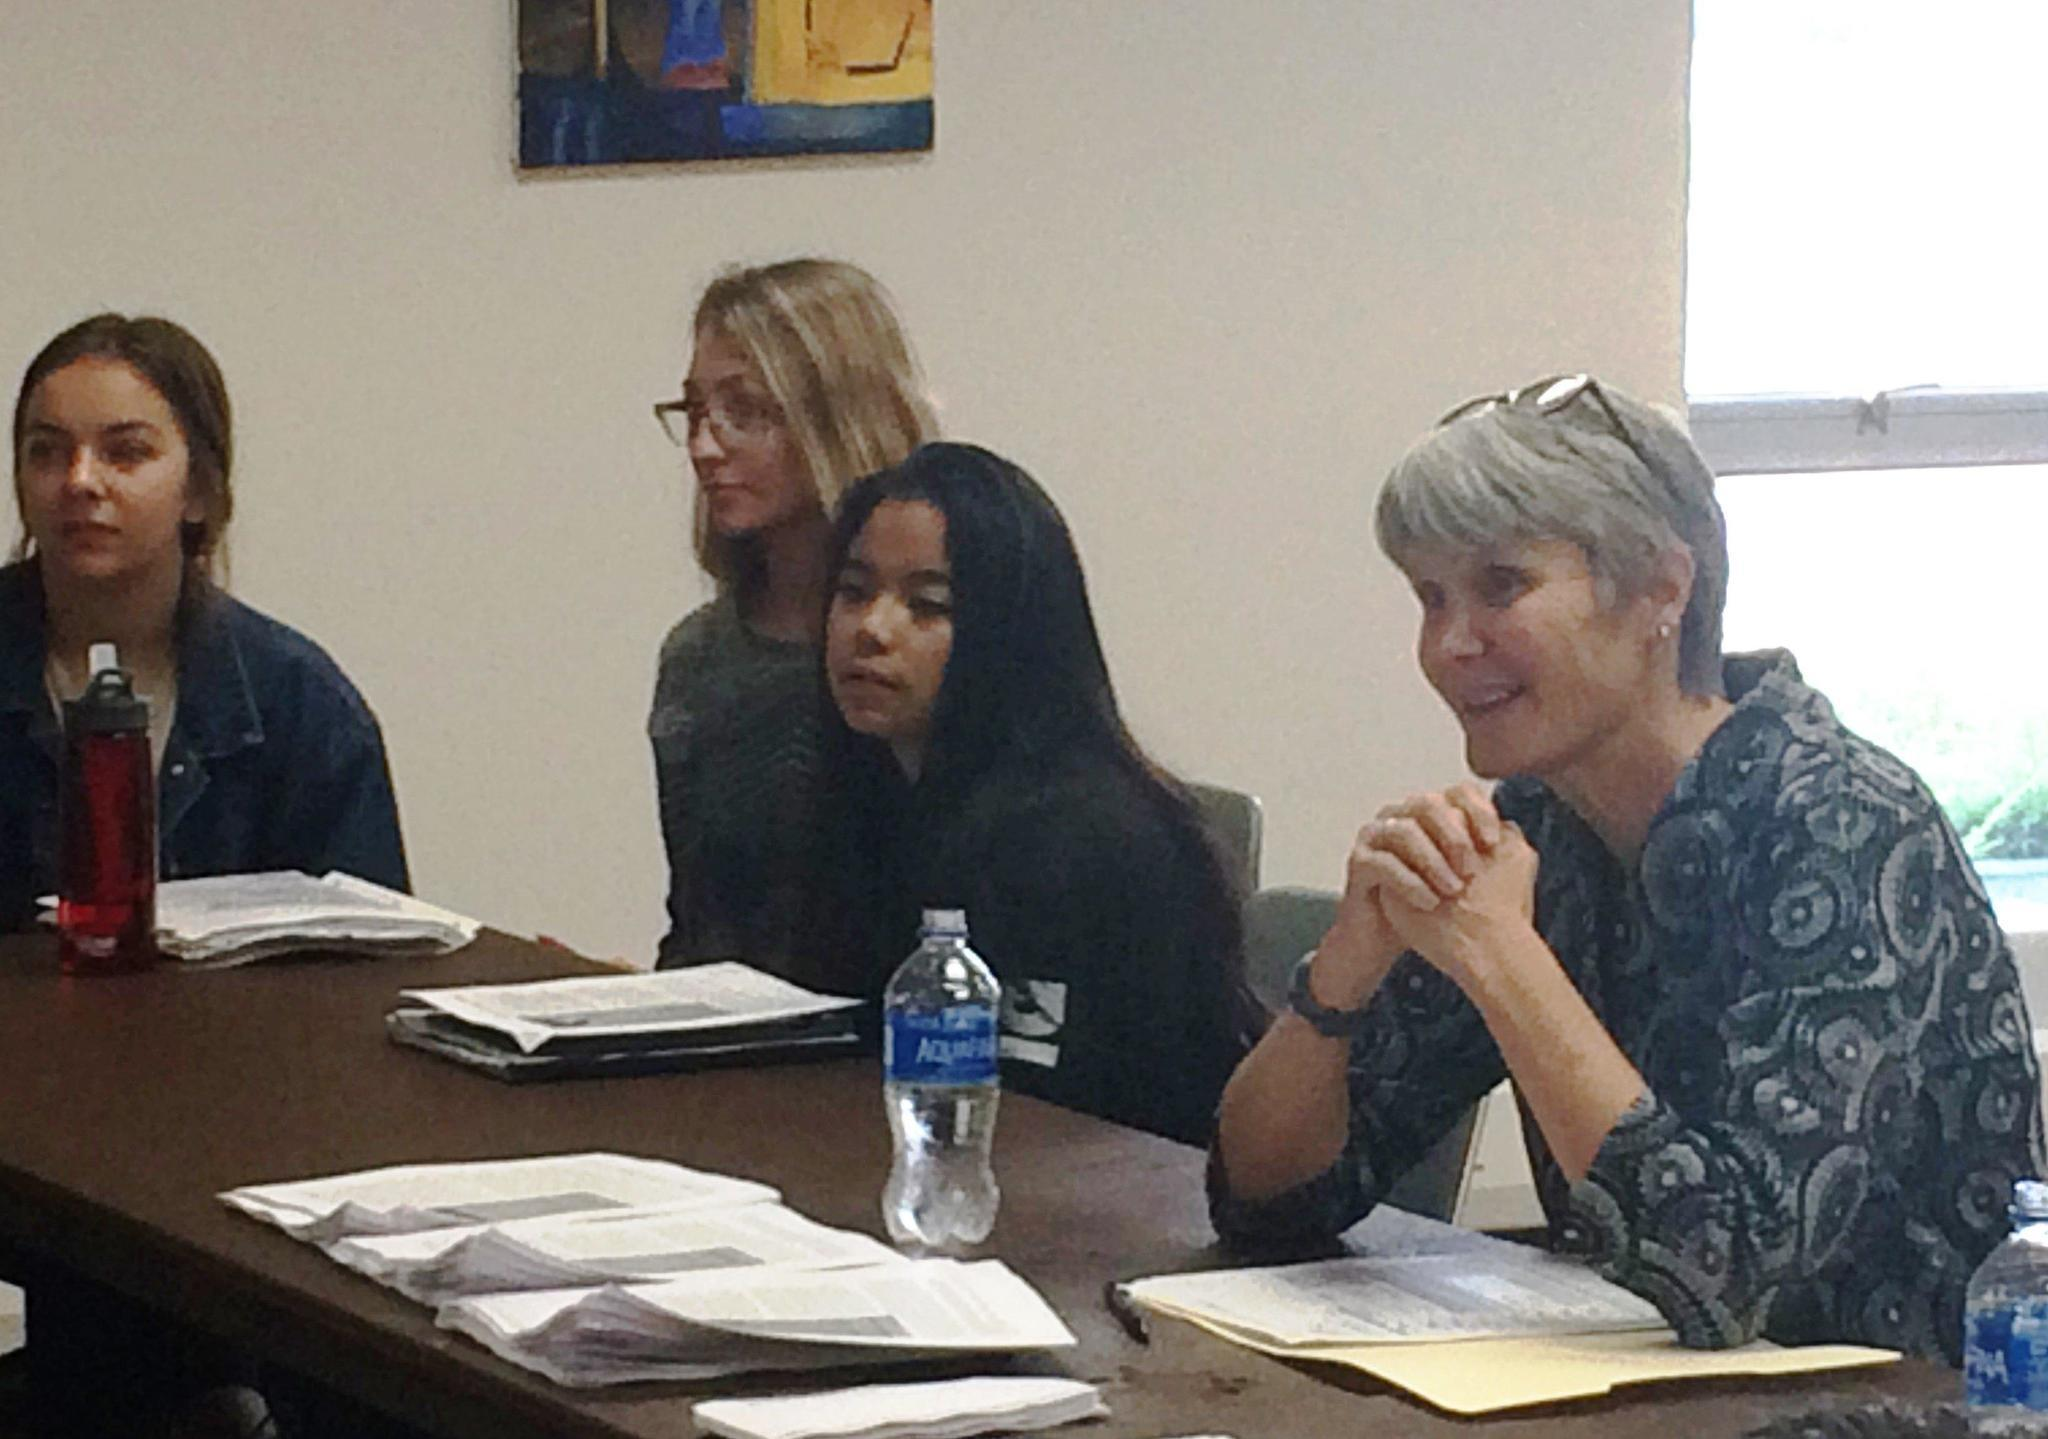 Prospect High School students among select group to pilot national religious studies program